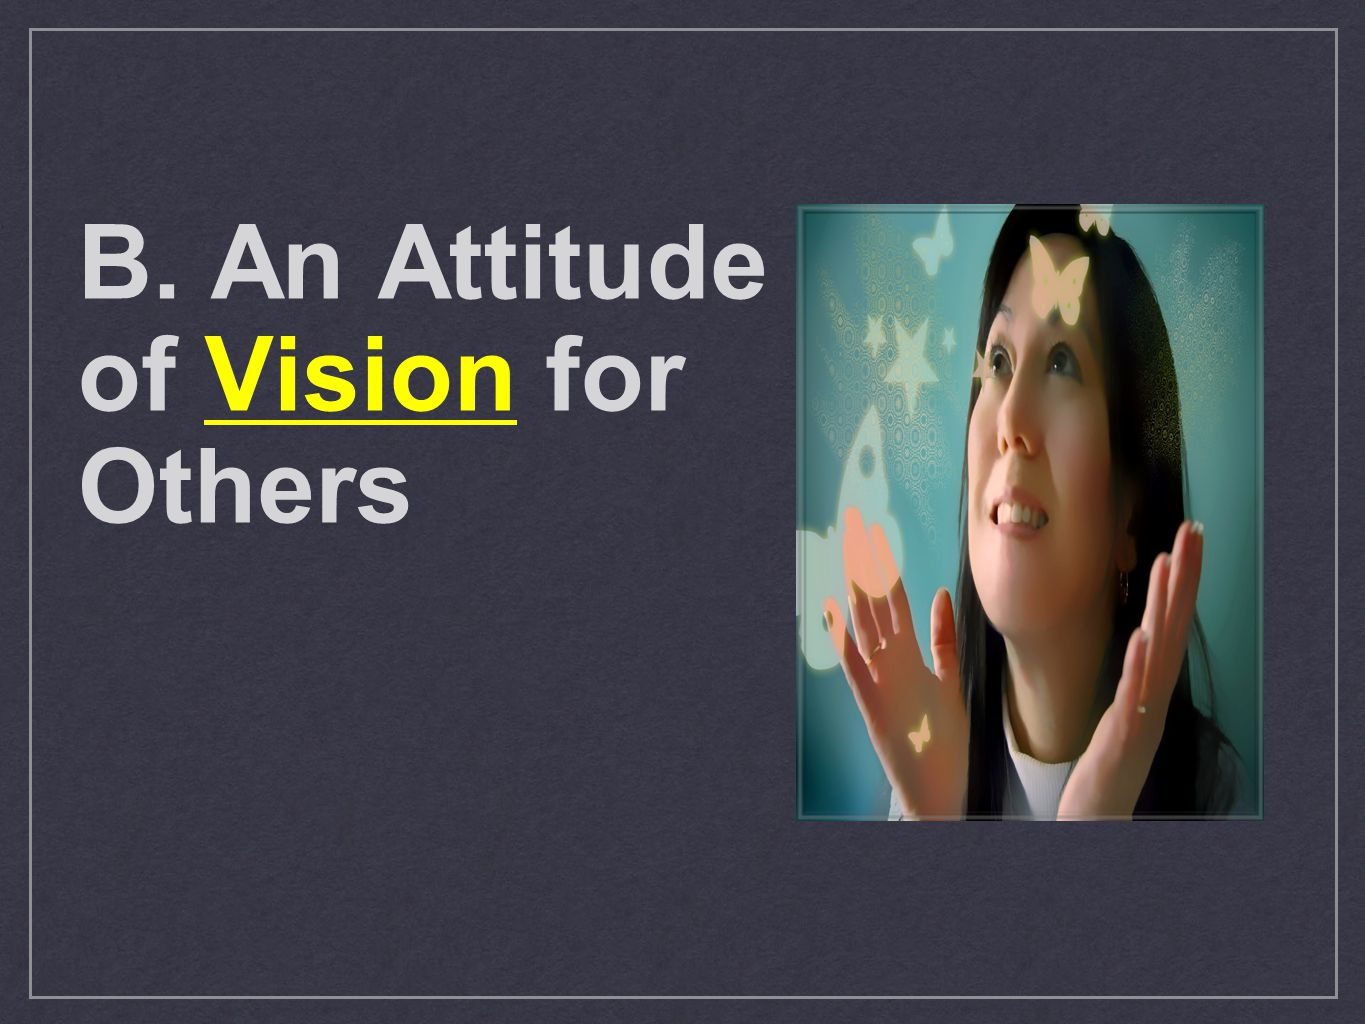 B. An Attitude of Vision for Others